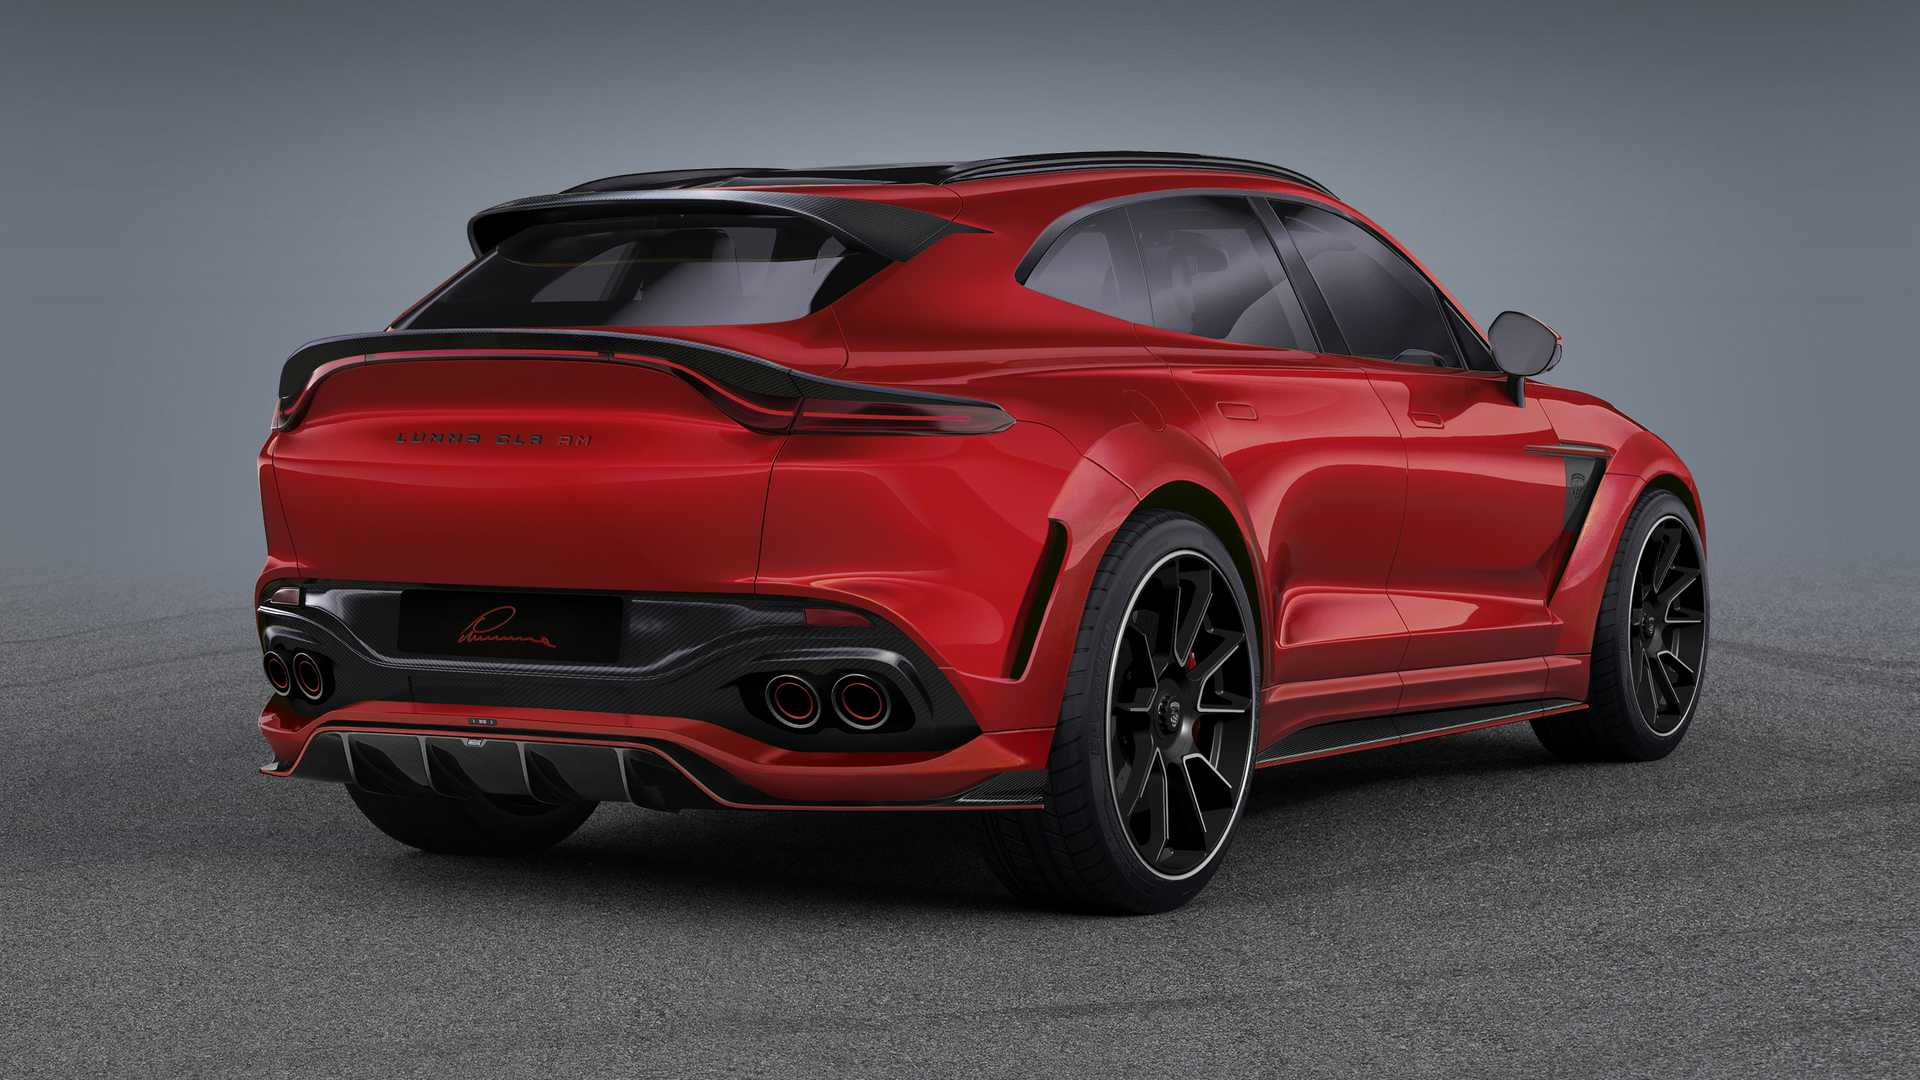 aston-martin-dbx-by-lumma-design-10